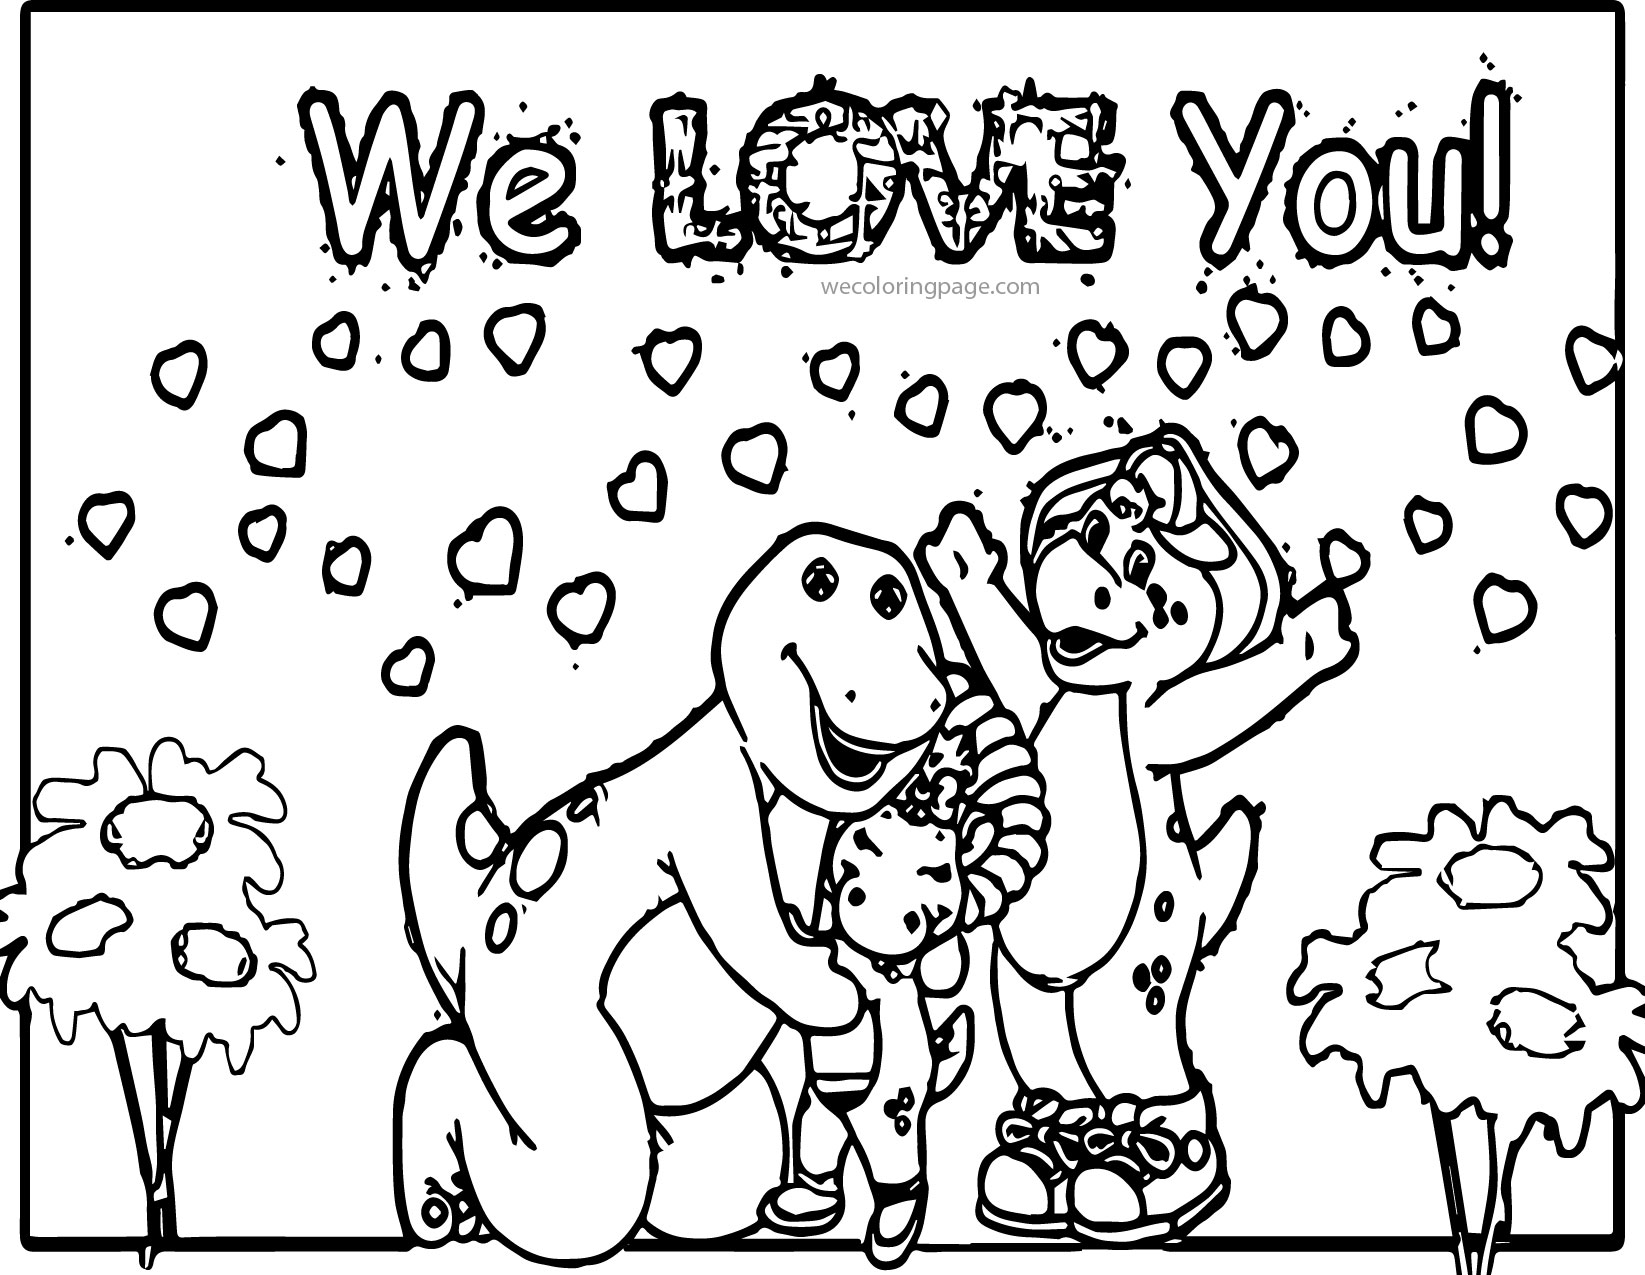 barney u0026 friends coloring pages wecoloringpage